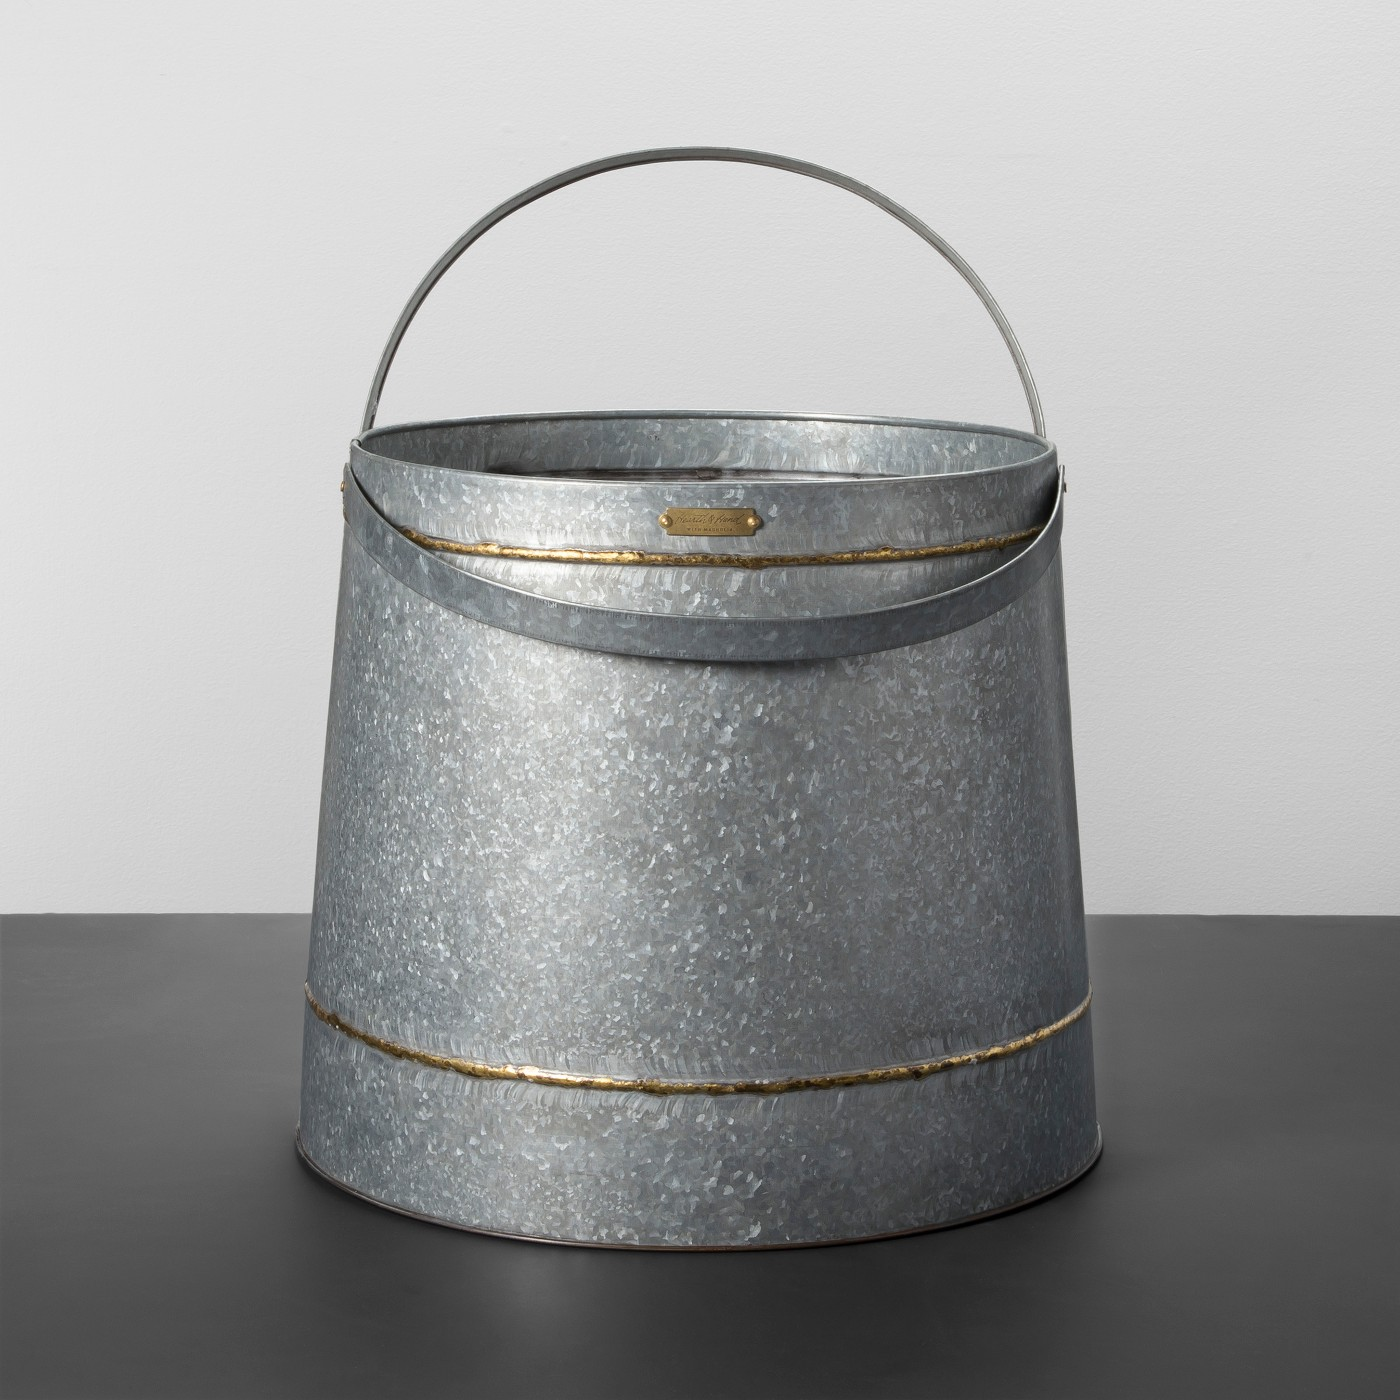 Round Galvanized Storage Bin - Hearth & Hand™ with Magnolia - image 1 of 3